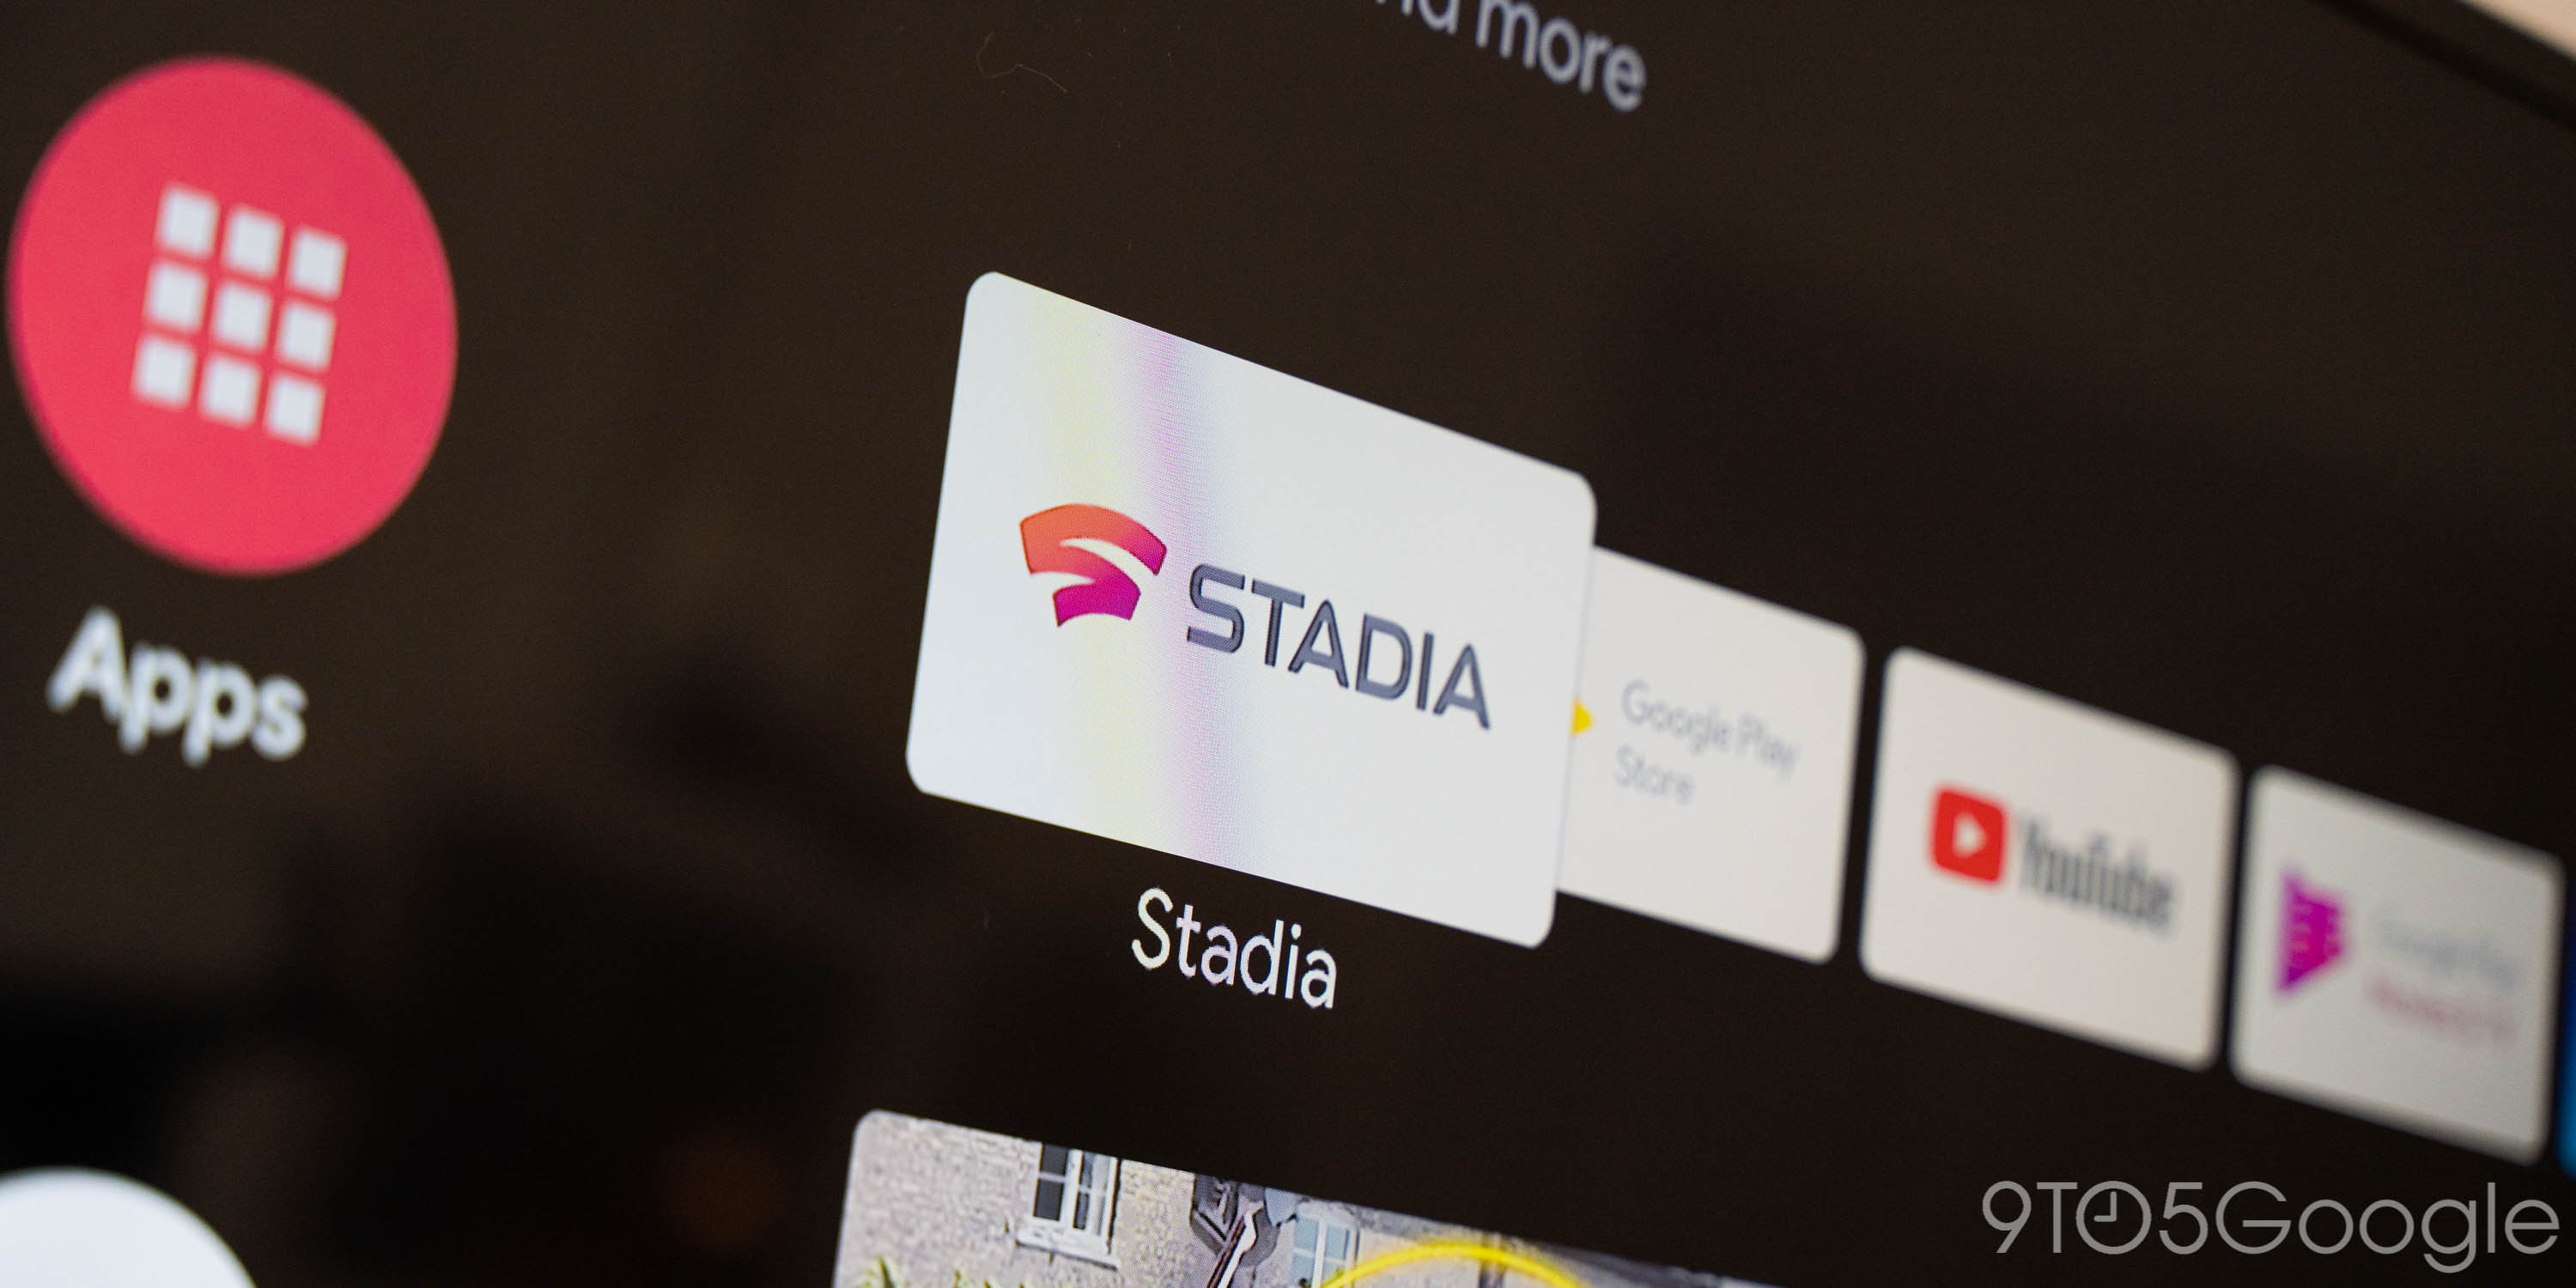 Google Stadia adds 4K HDR support on Android TV - 9to5Google